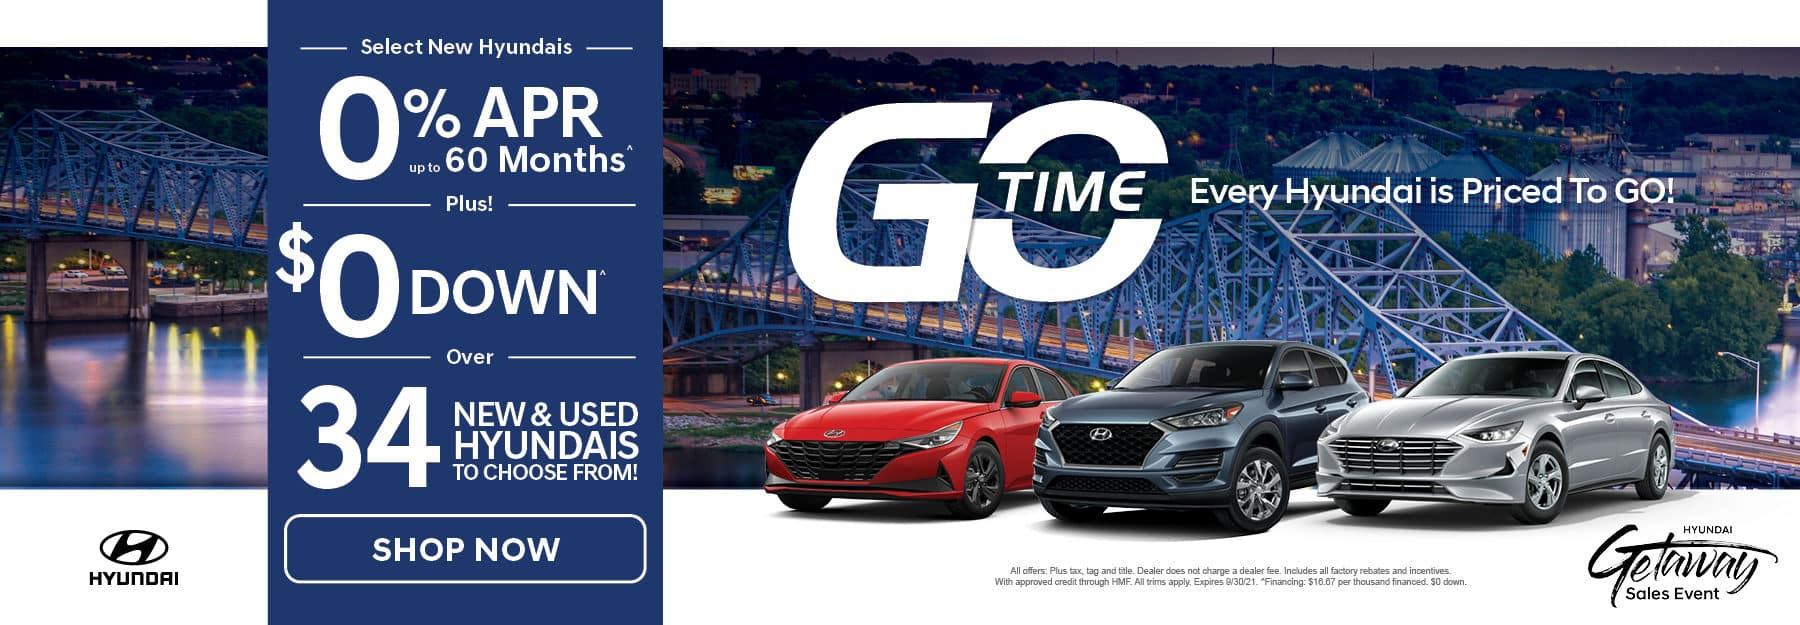 1764040-GHY-Go Time Web Assets HERO-1800×625